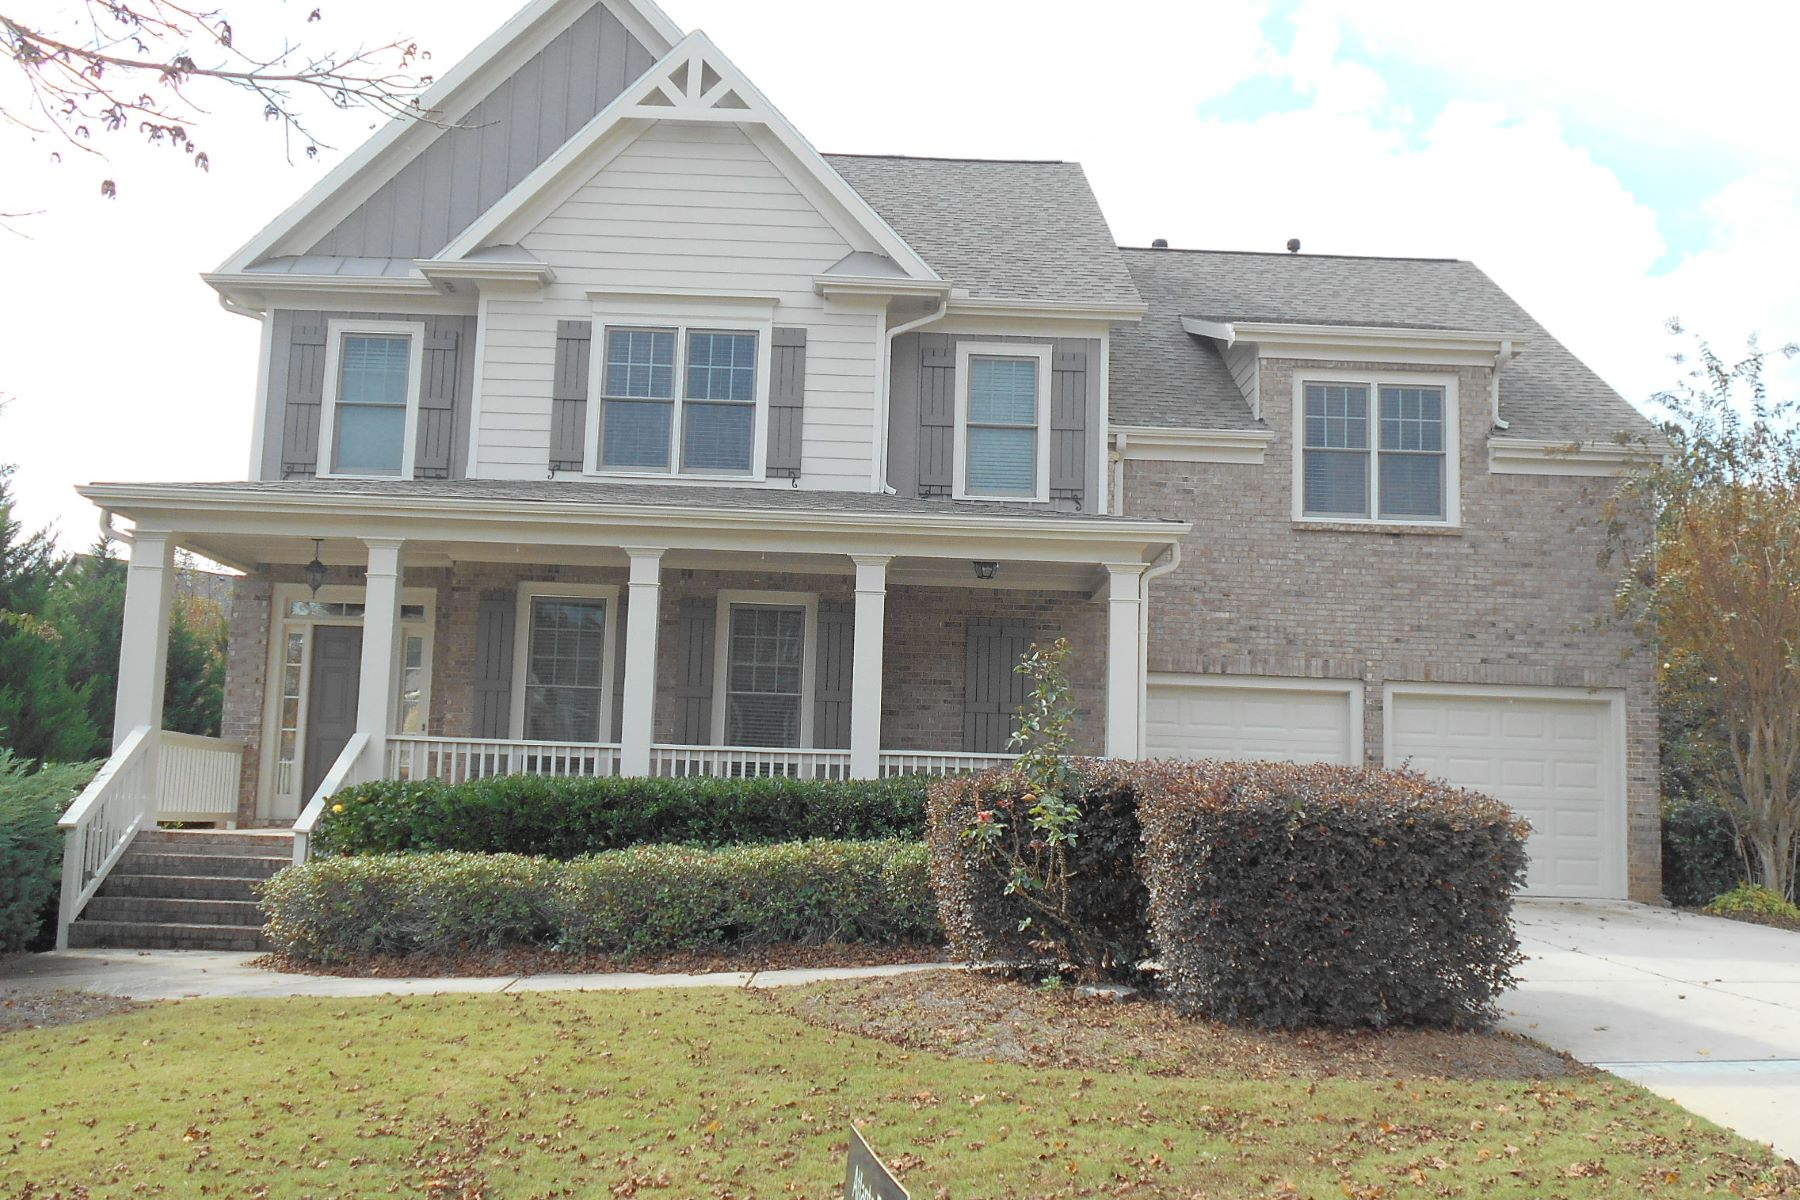 Outstanding Floor Plan 7634 Tenspeed Court Flowery Branch, Georgia 30542 United States